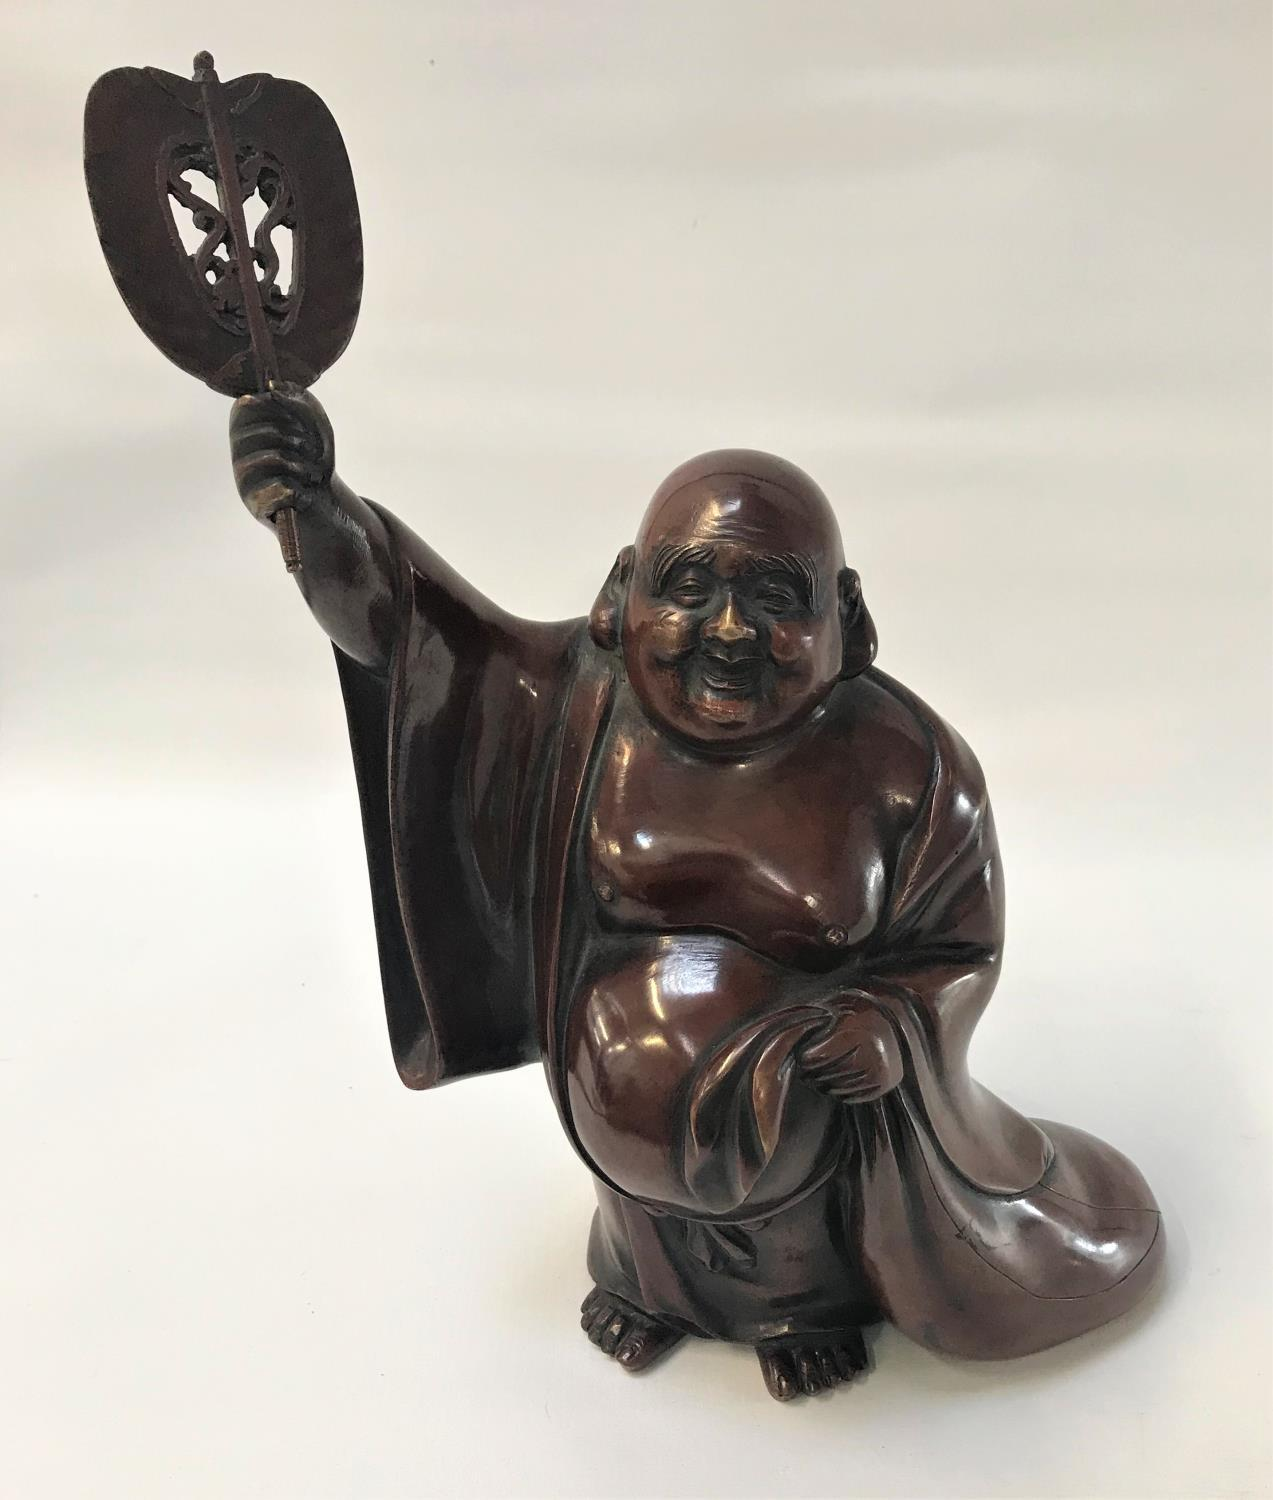 Lot 290 - 19TH CENTURY BRONZE FIGURE OF HOTEI wearing a loose open robe, with a smiling expression and one arm